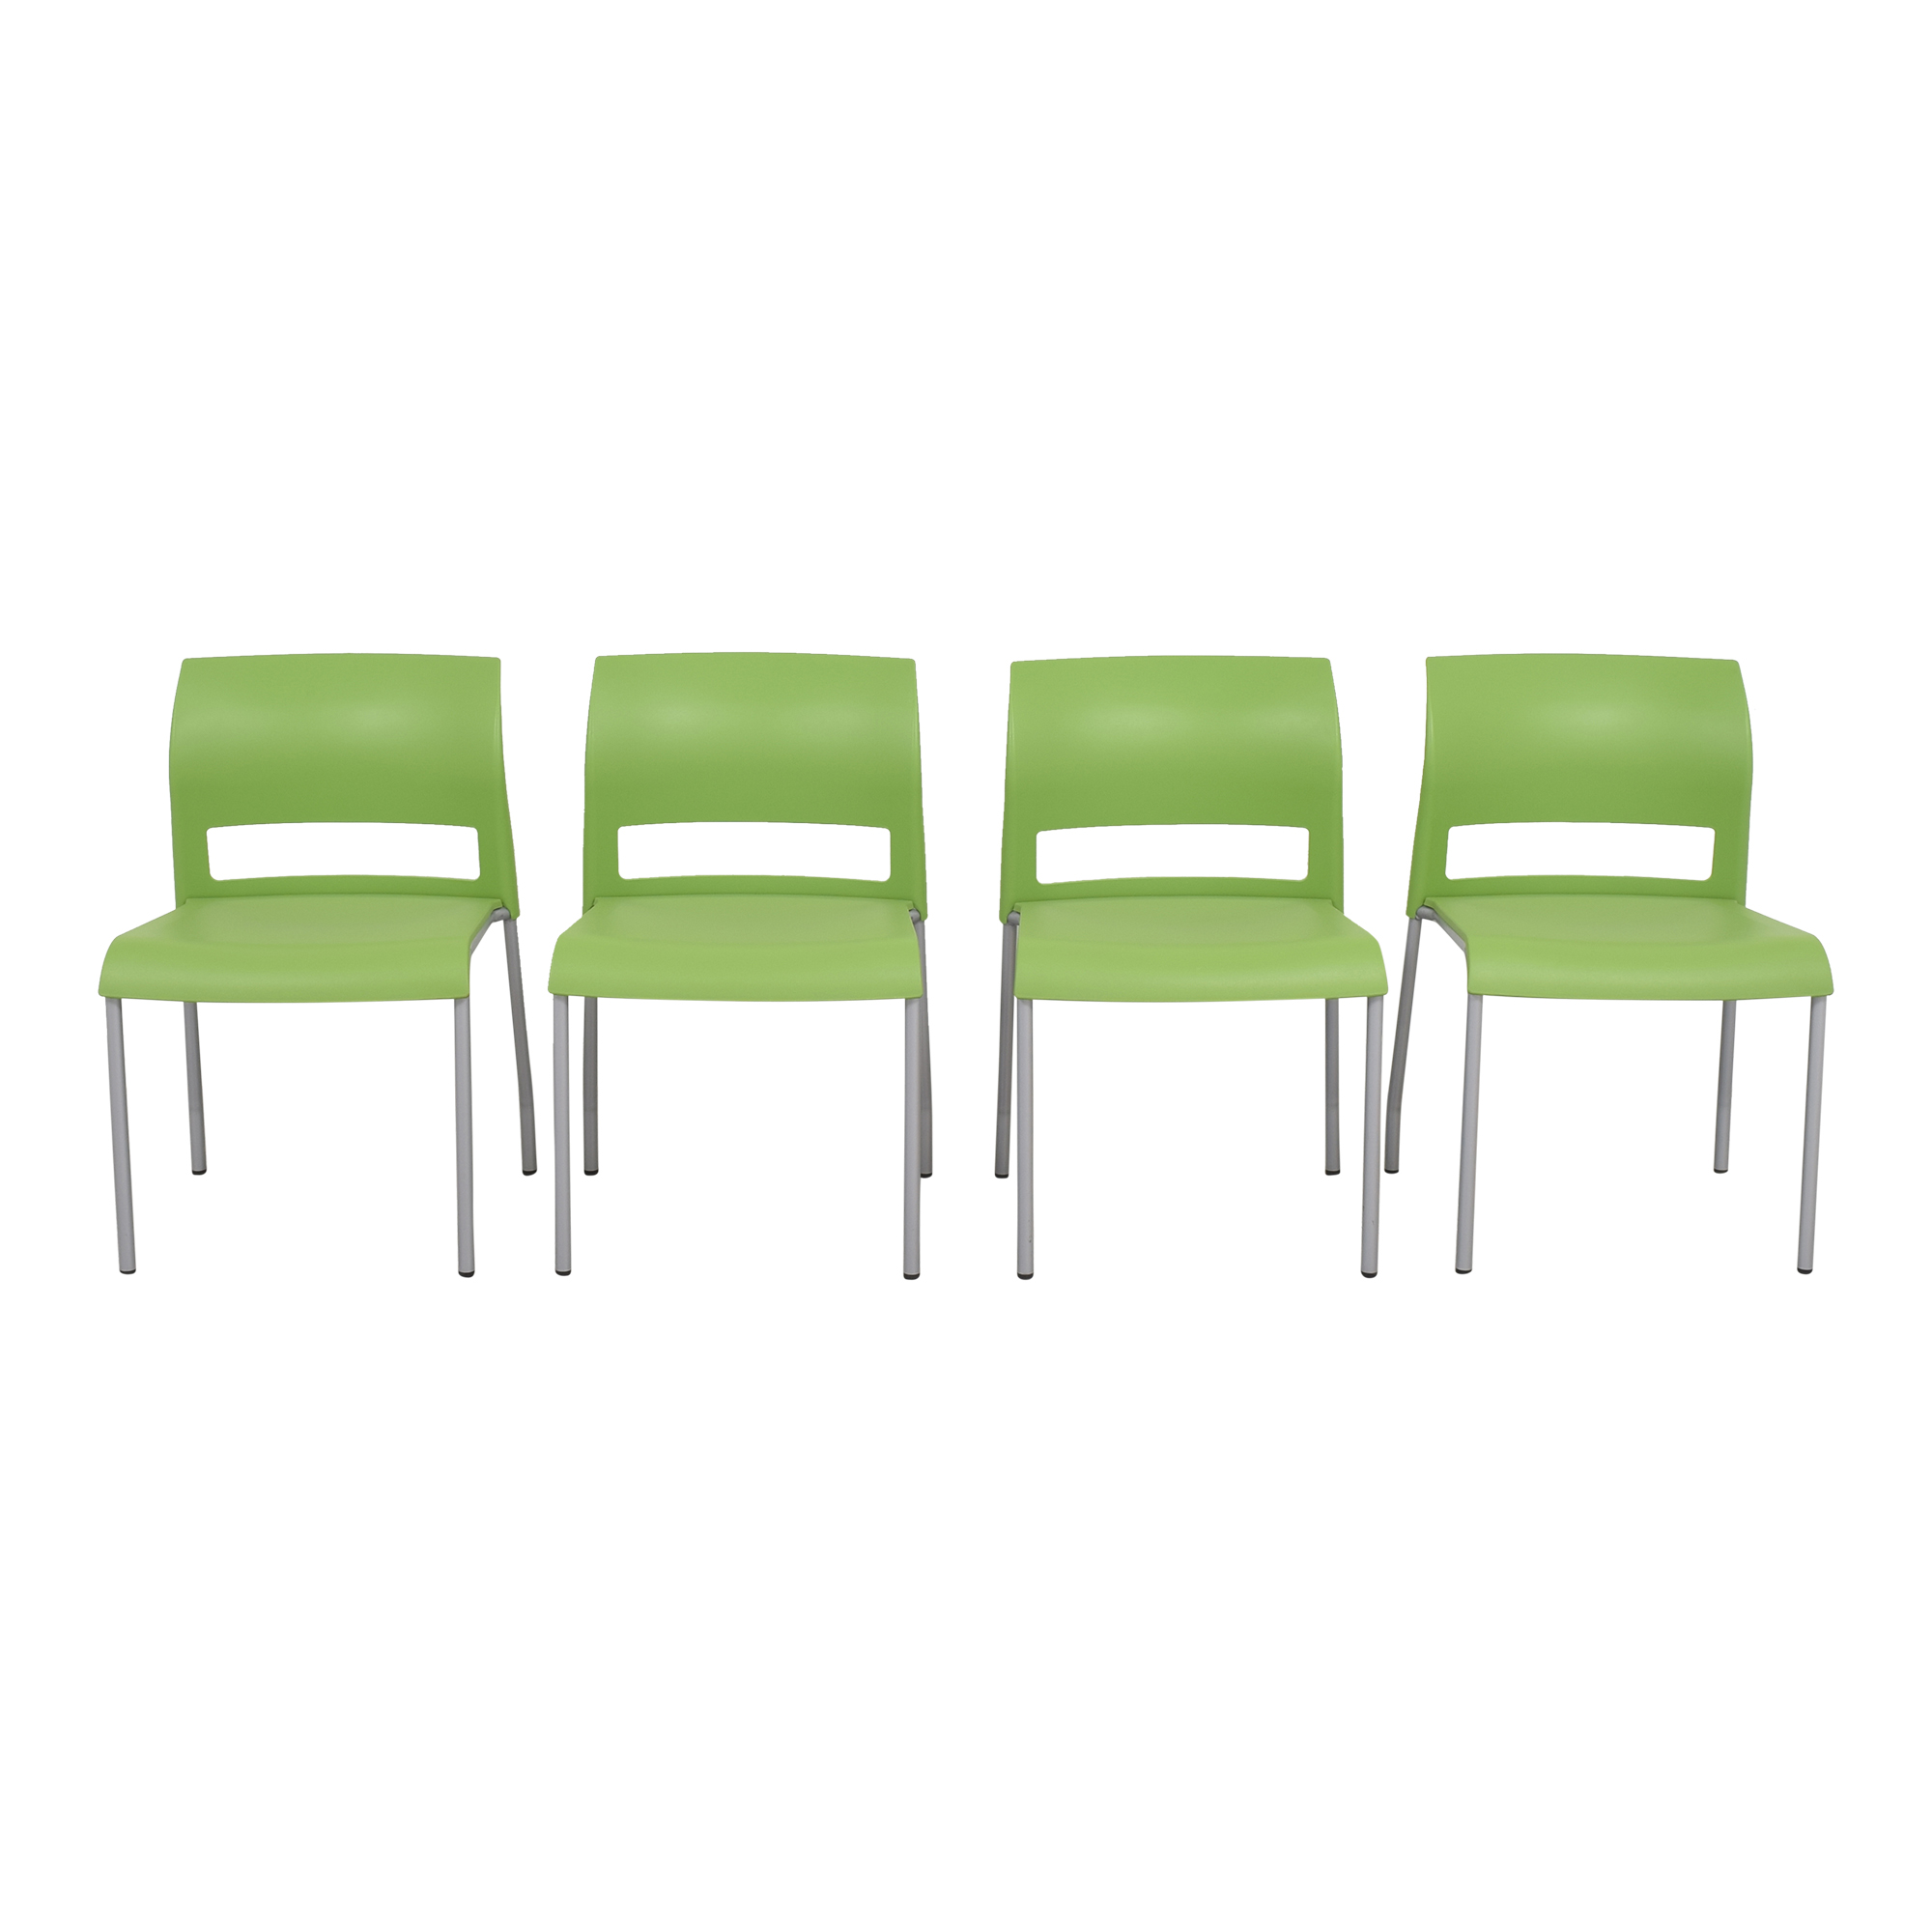 Steelcase Steelcase Move Stackable Chairs